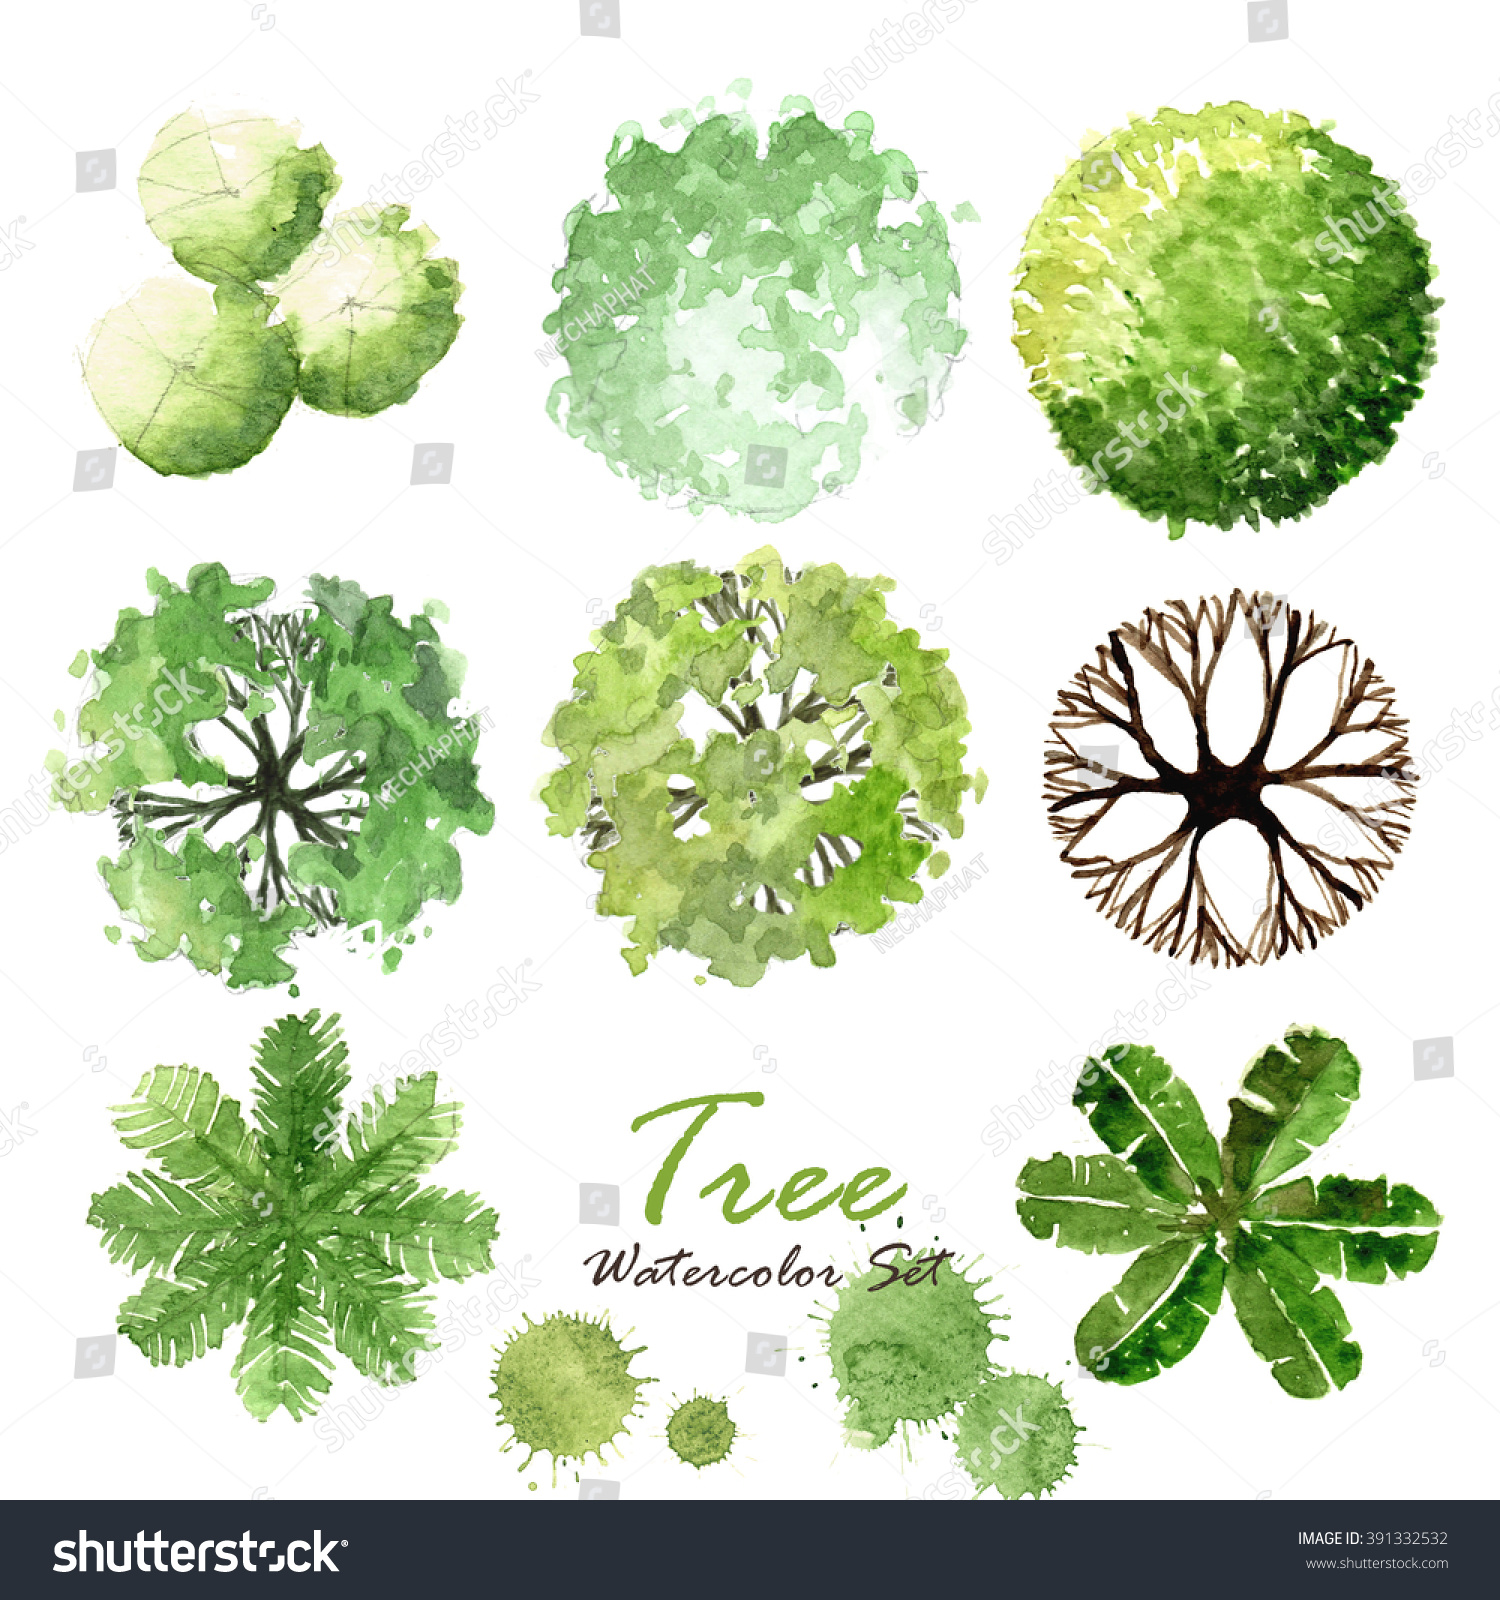 Simple Tagstree Plan Vectors Photos And Psd Files Free Vector Download With Tree View